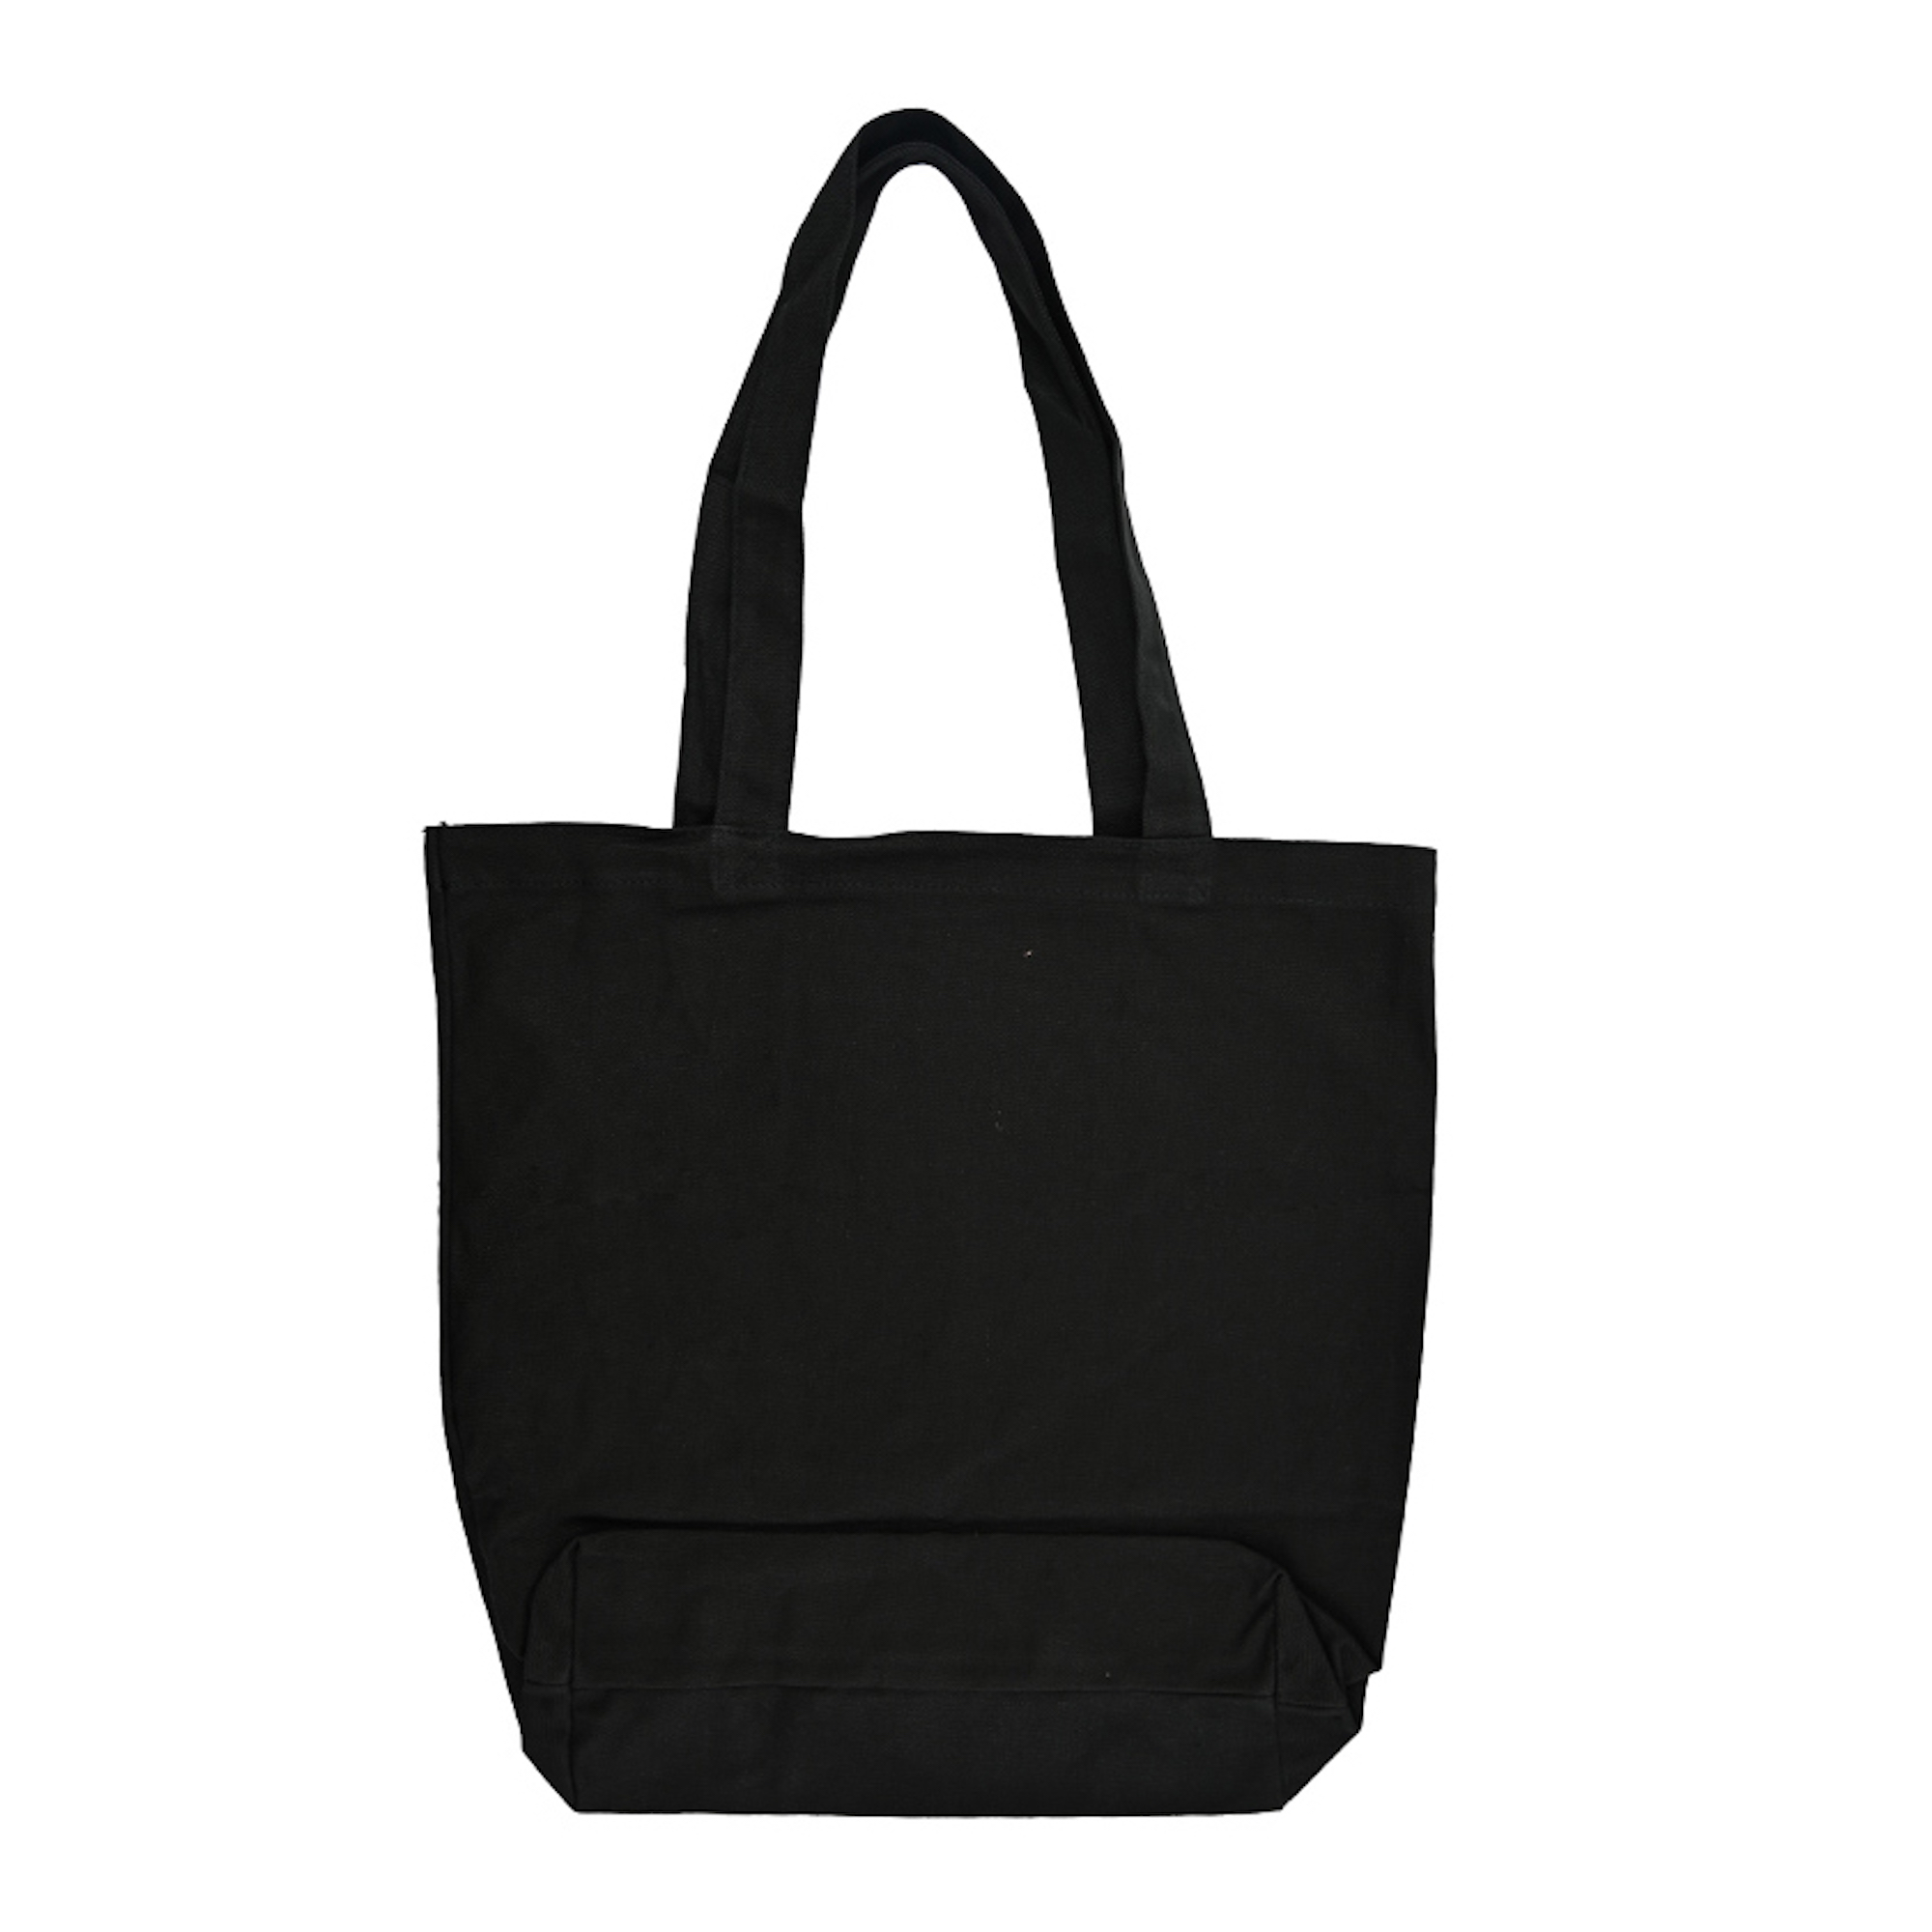 Man About Town tote bag back